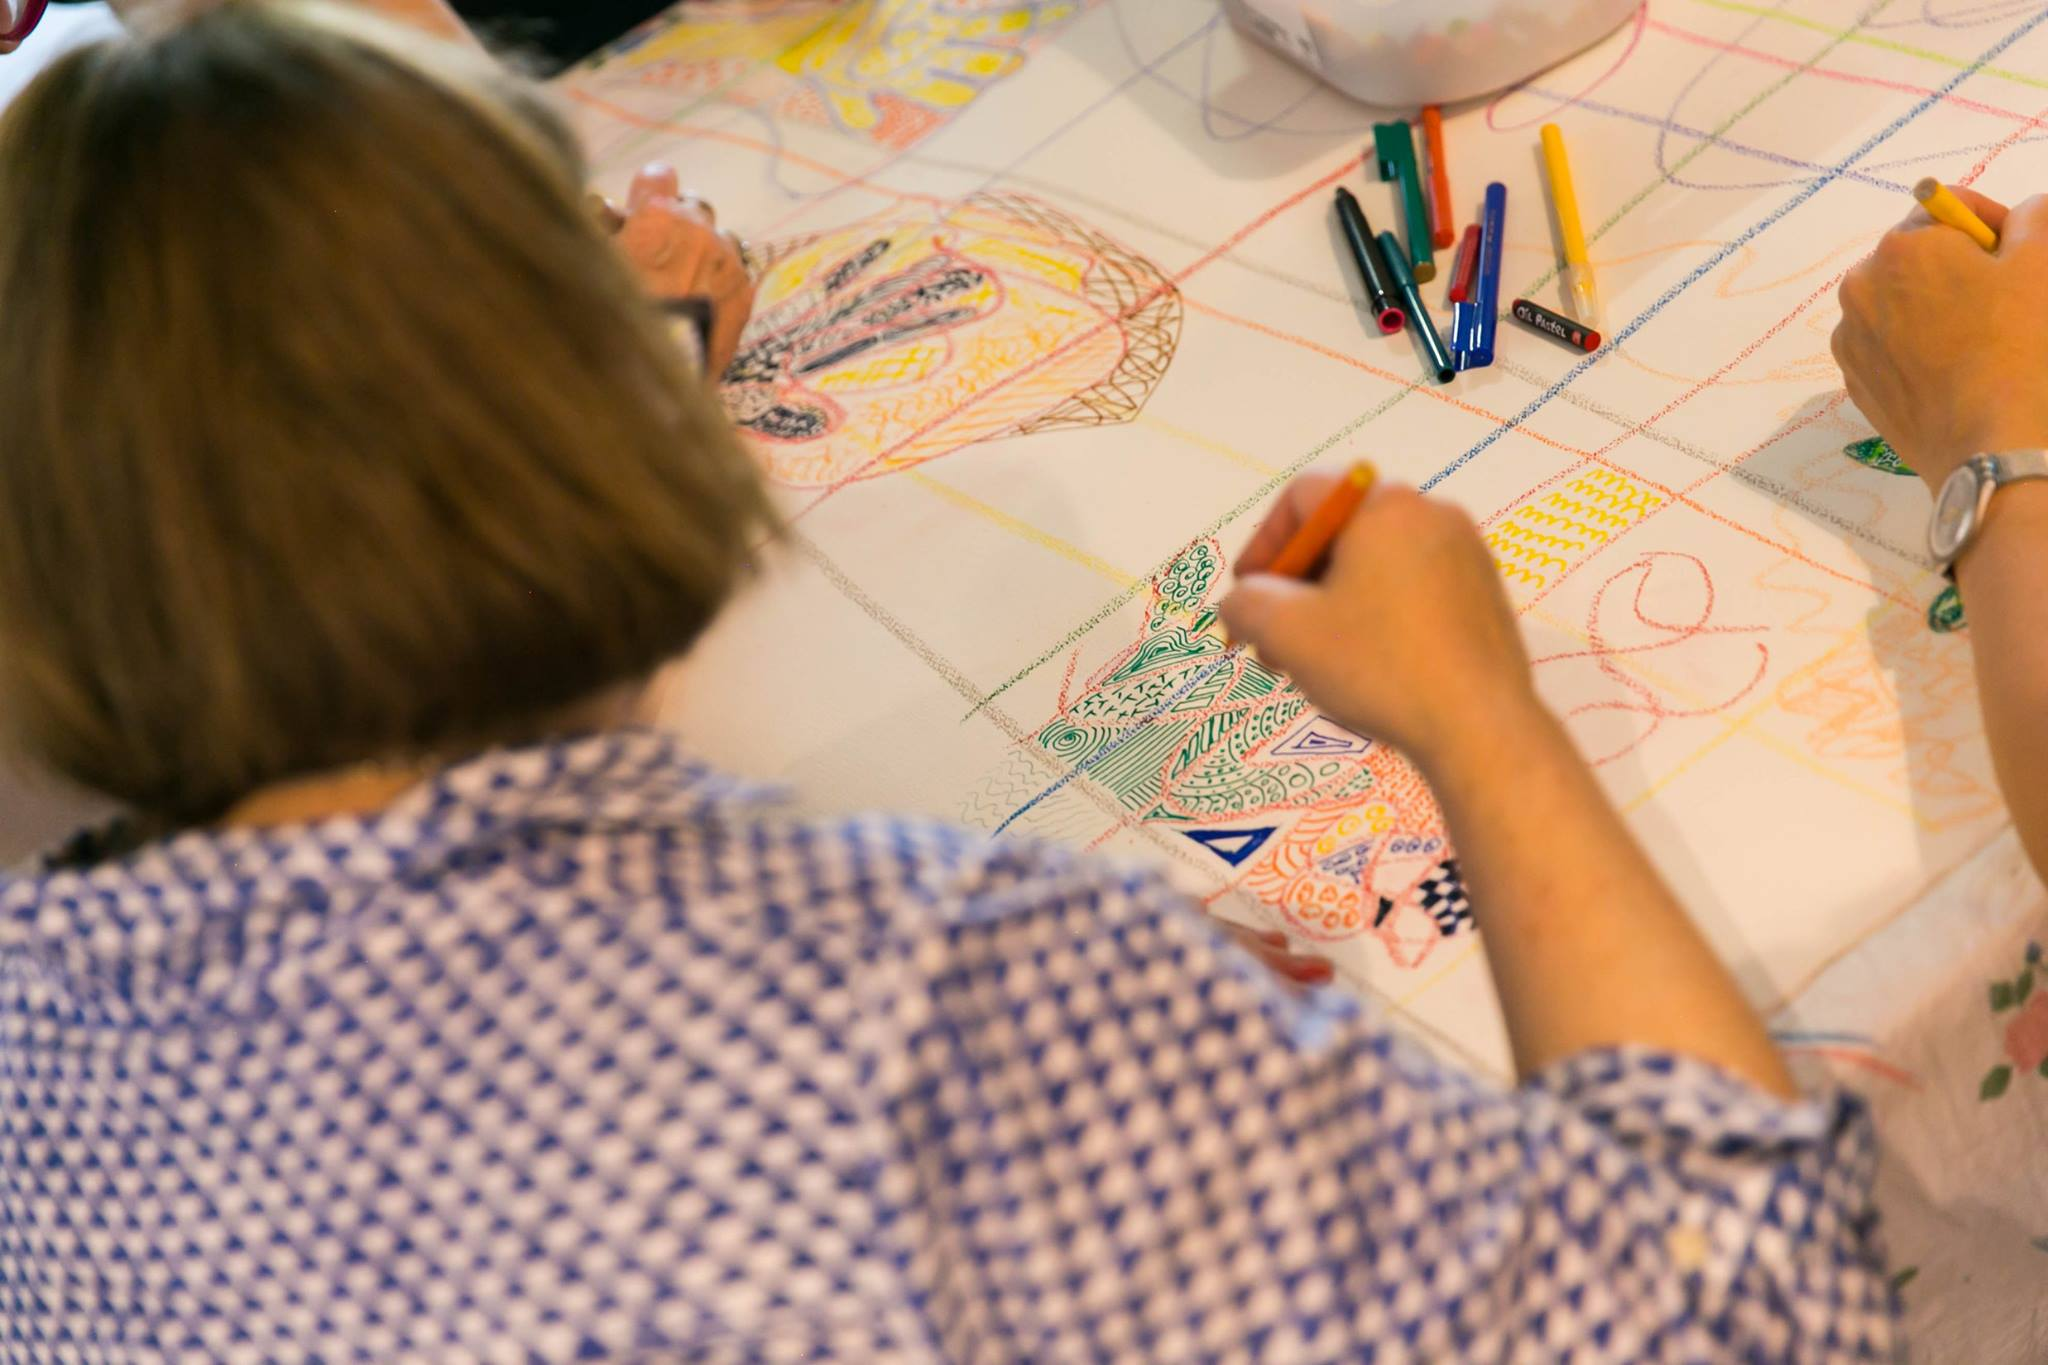 Focused art making activity, at our Creative Mama Workshop, in support of PANDA Awareness Week.